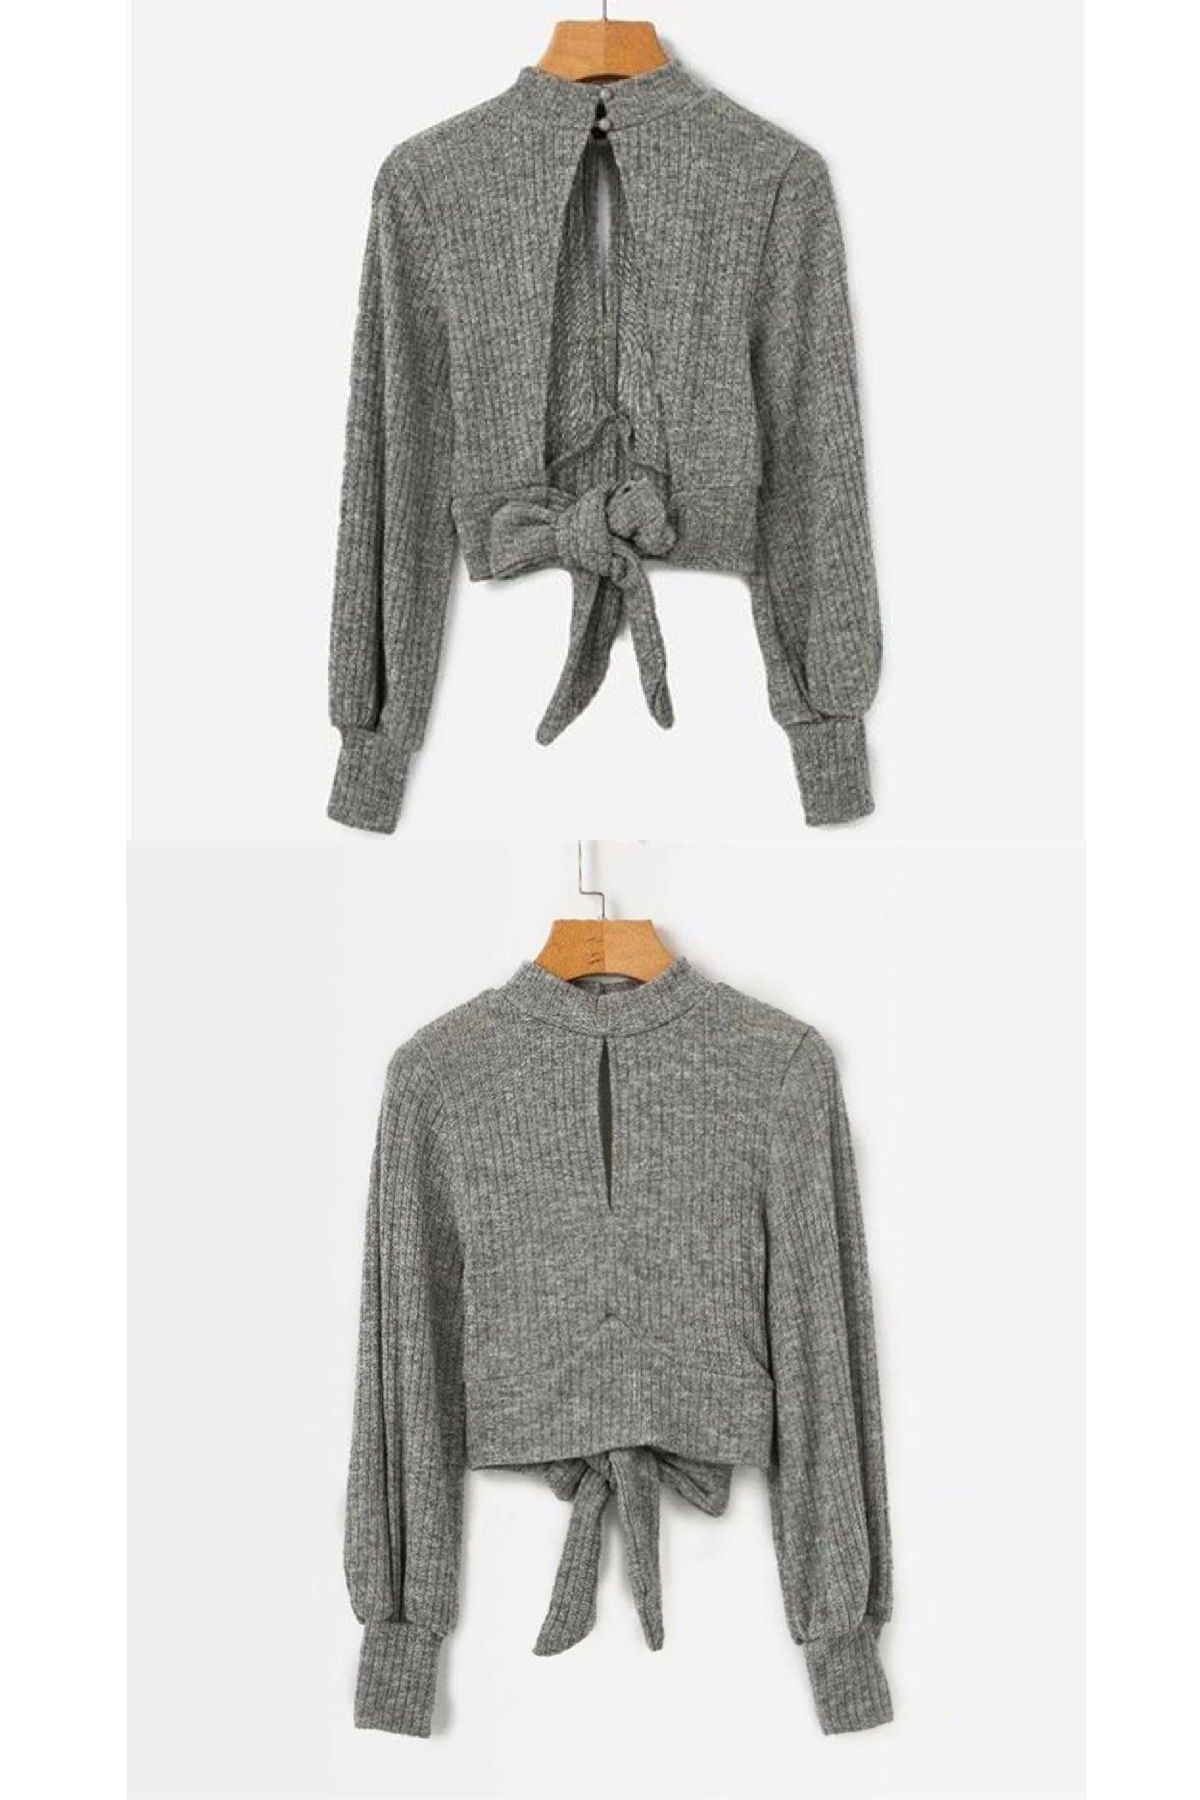 17b3db0b4 Grey Highstreet Open Back Knot Detail Crop Marled Knit Long Sleeve Solid  Jumper Autumn Casual Women